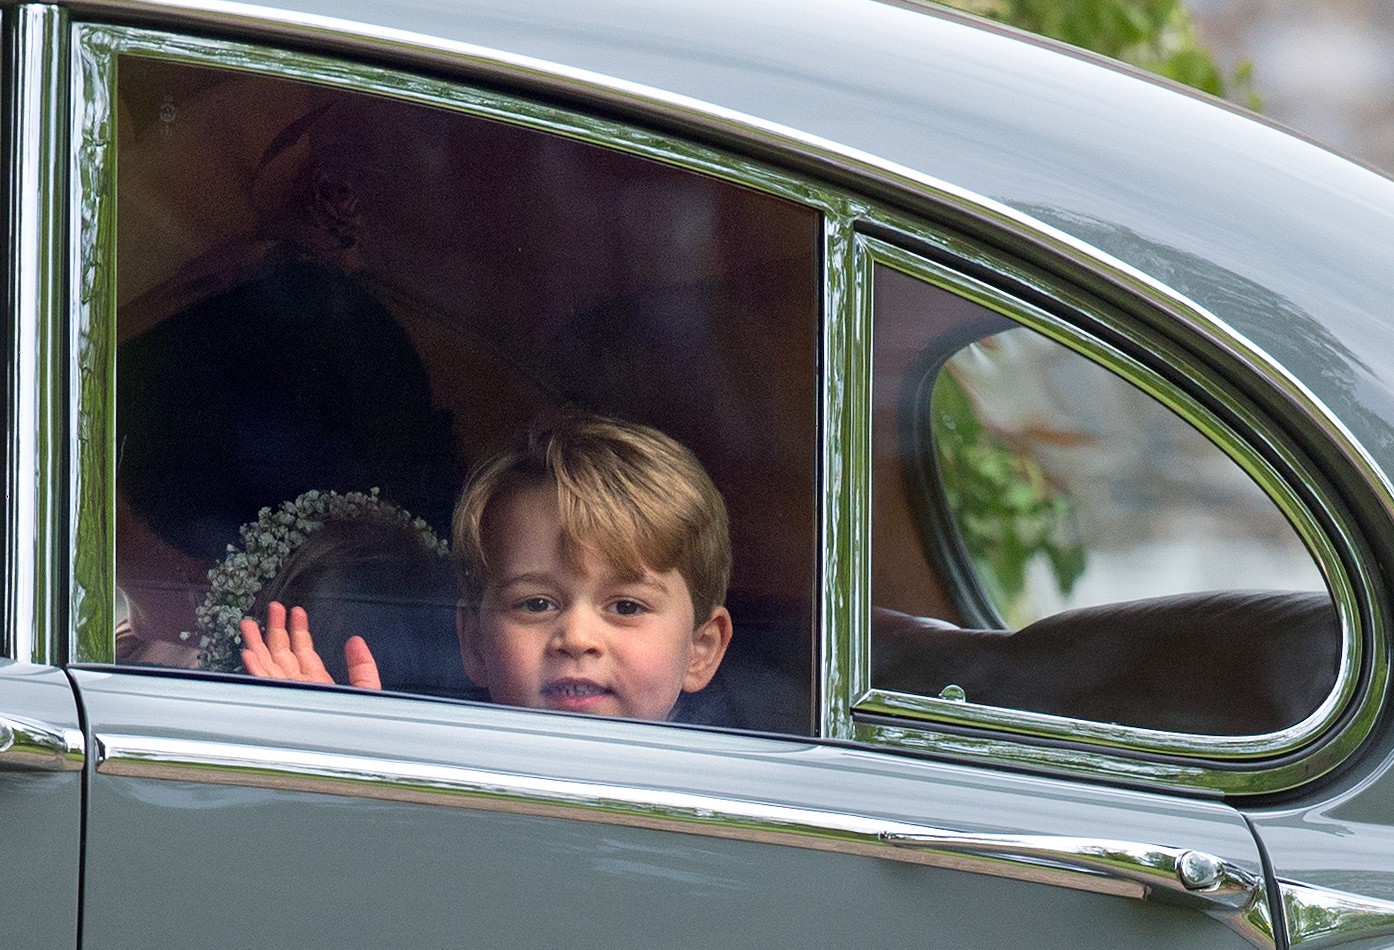 Prince George Looking Out of Car Window